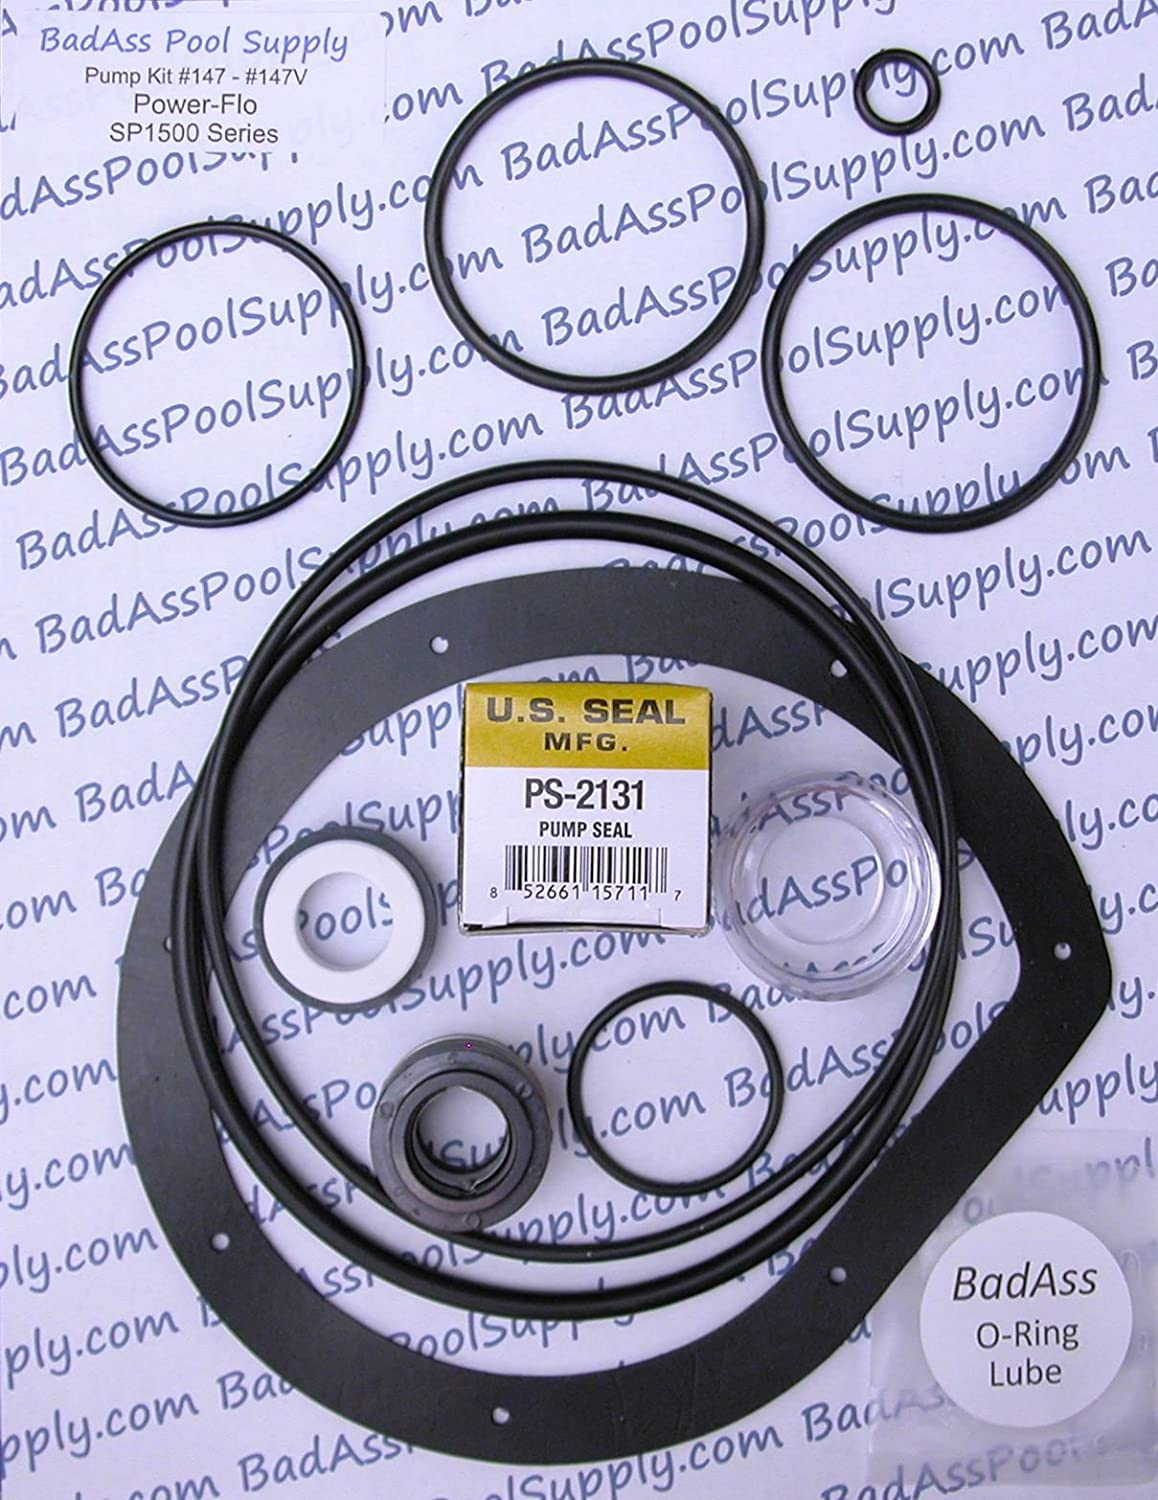 SP1500-P LID O-RING FOR HAYWARD POWER FLO PUMP